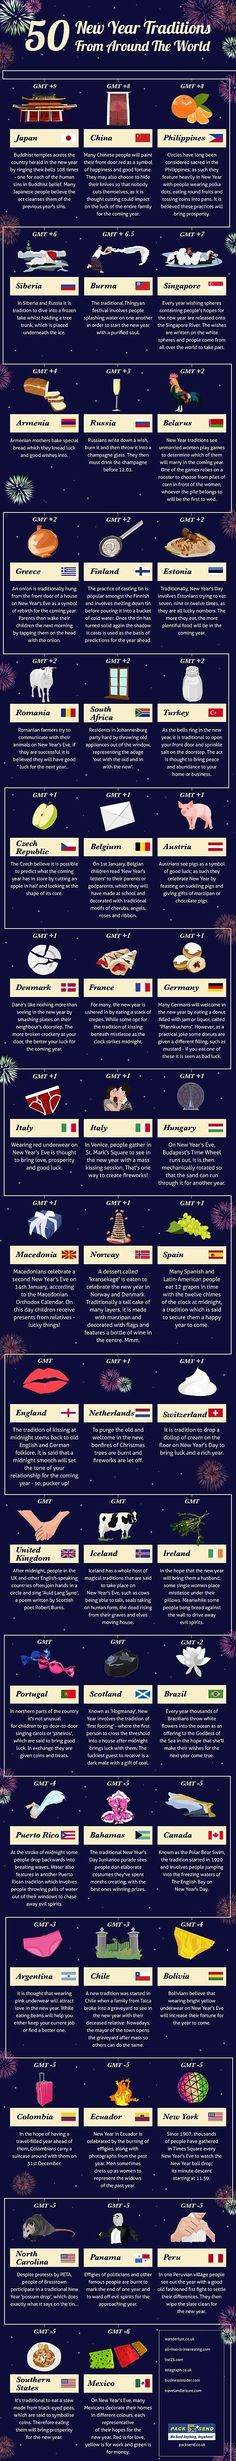 Strangest NYE traditions from around the world : An infographic of all the weird and wonderful ways that NYE is celebrated throughout the world New Years Eve Day, New Years 2016, New Years Party, New Years Traditions, Holiday Traditions, Family Traditions, Holidays Around The World, Around The Worlds, Saint Sylvestre